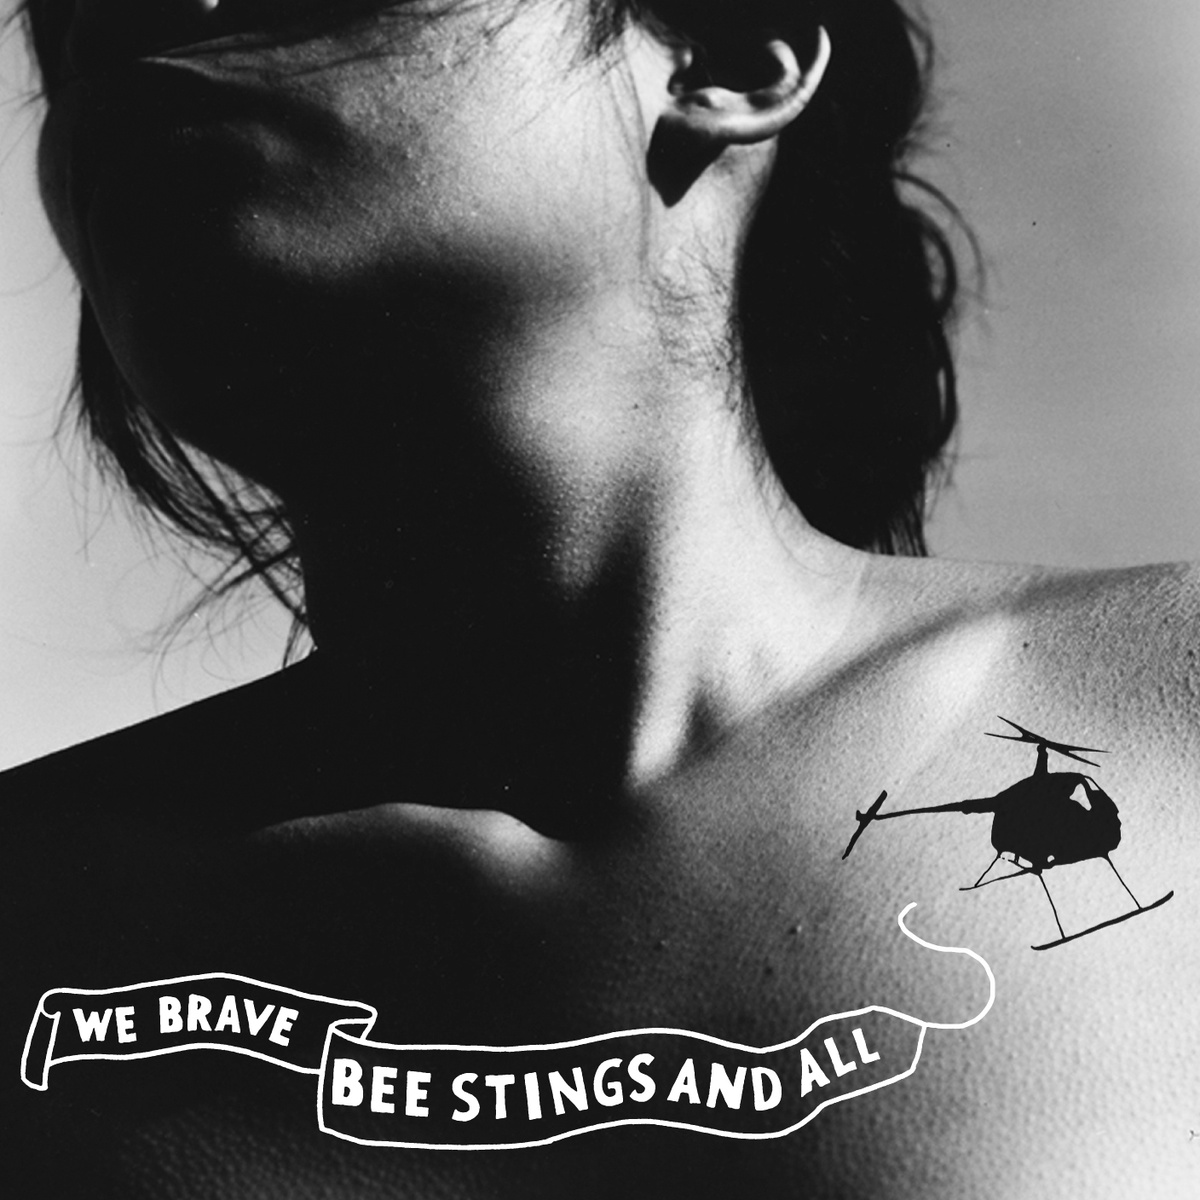 Thao and the Get Down Stay Down's album We Brave Bee Stings and All is out now.